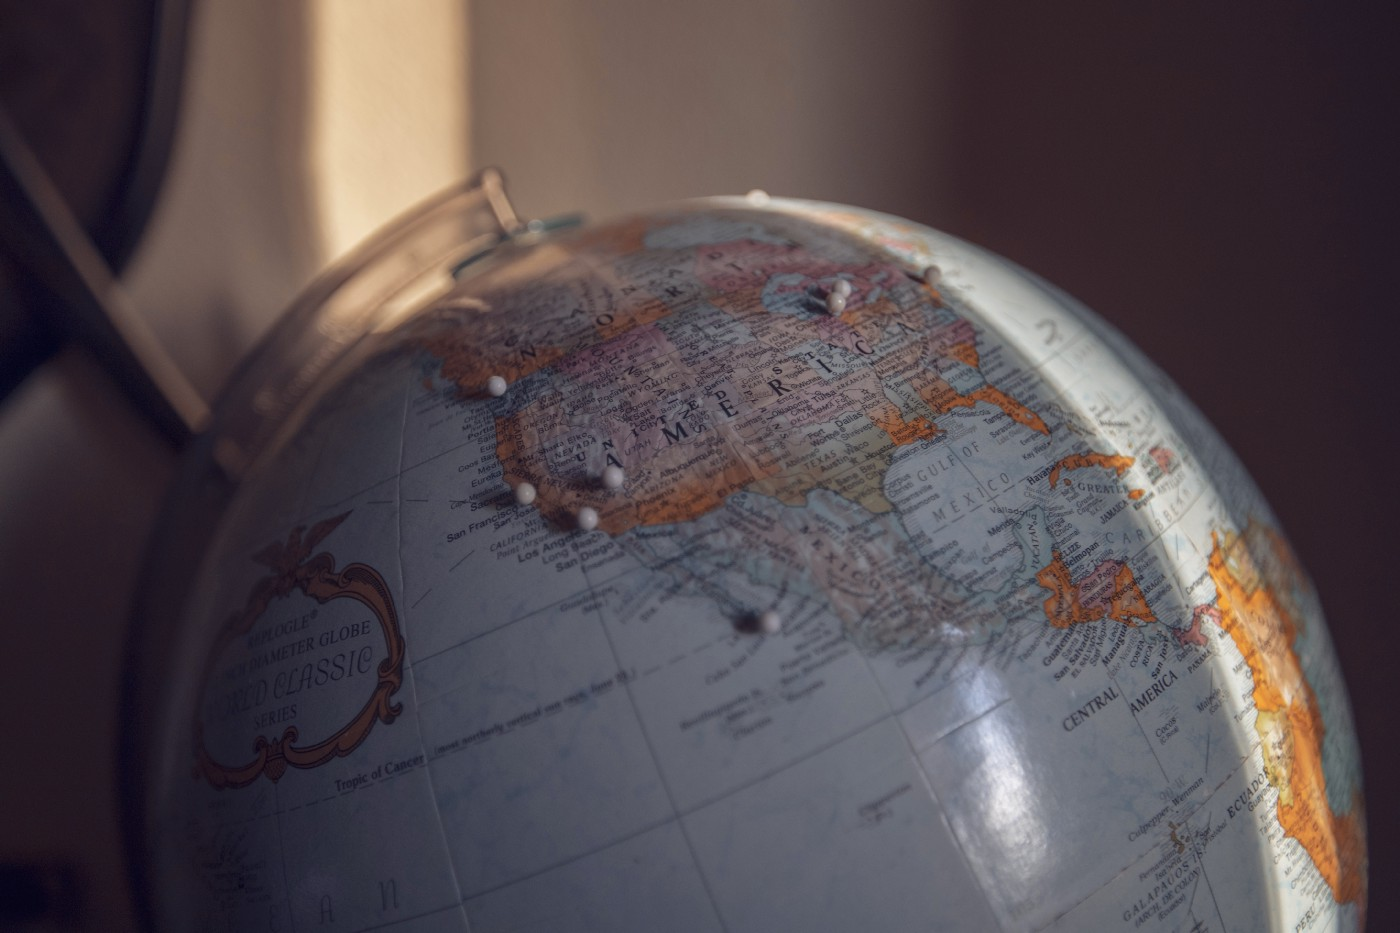 A large globe with stick pins designating travel destinations